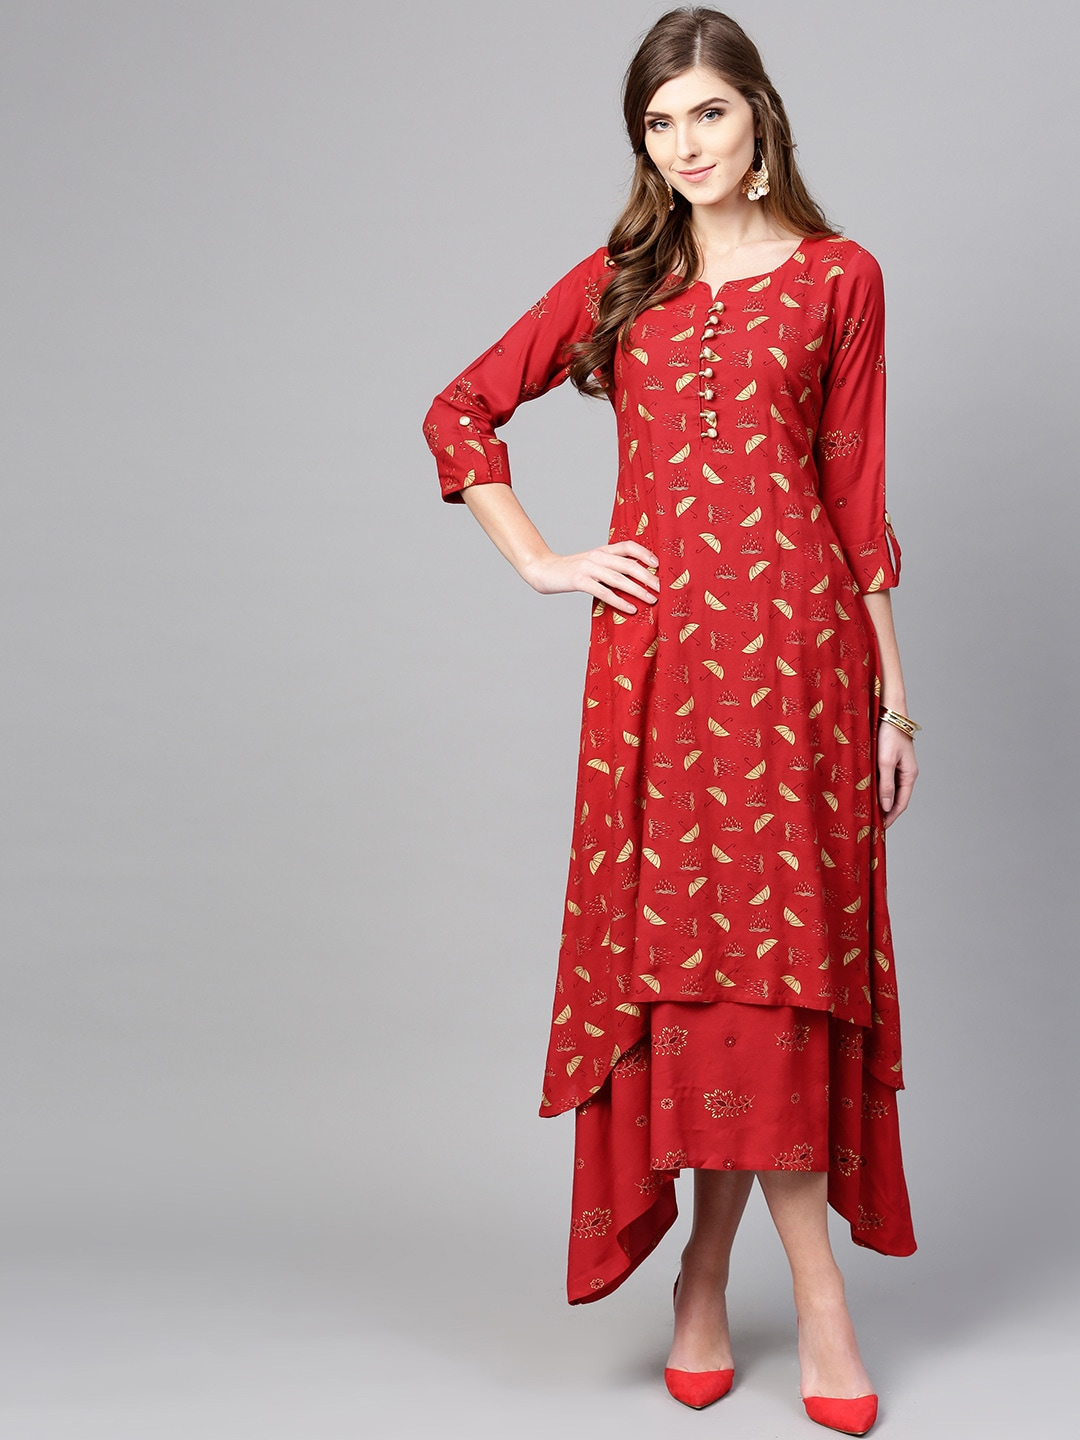 adeff028c37 Indian Party Wear Dresses For Pregnant Ladies - Gomes Weine AG